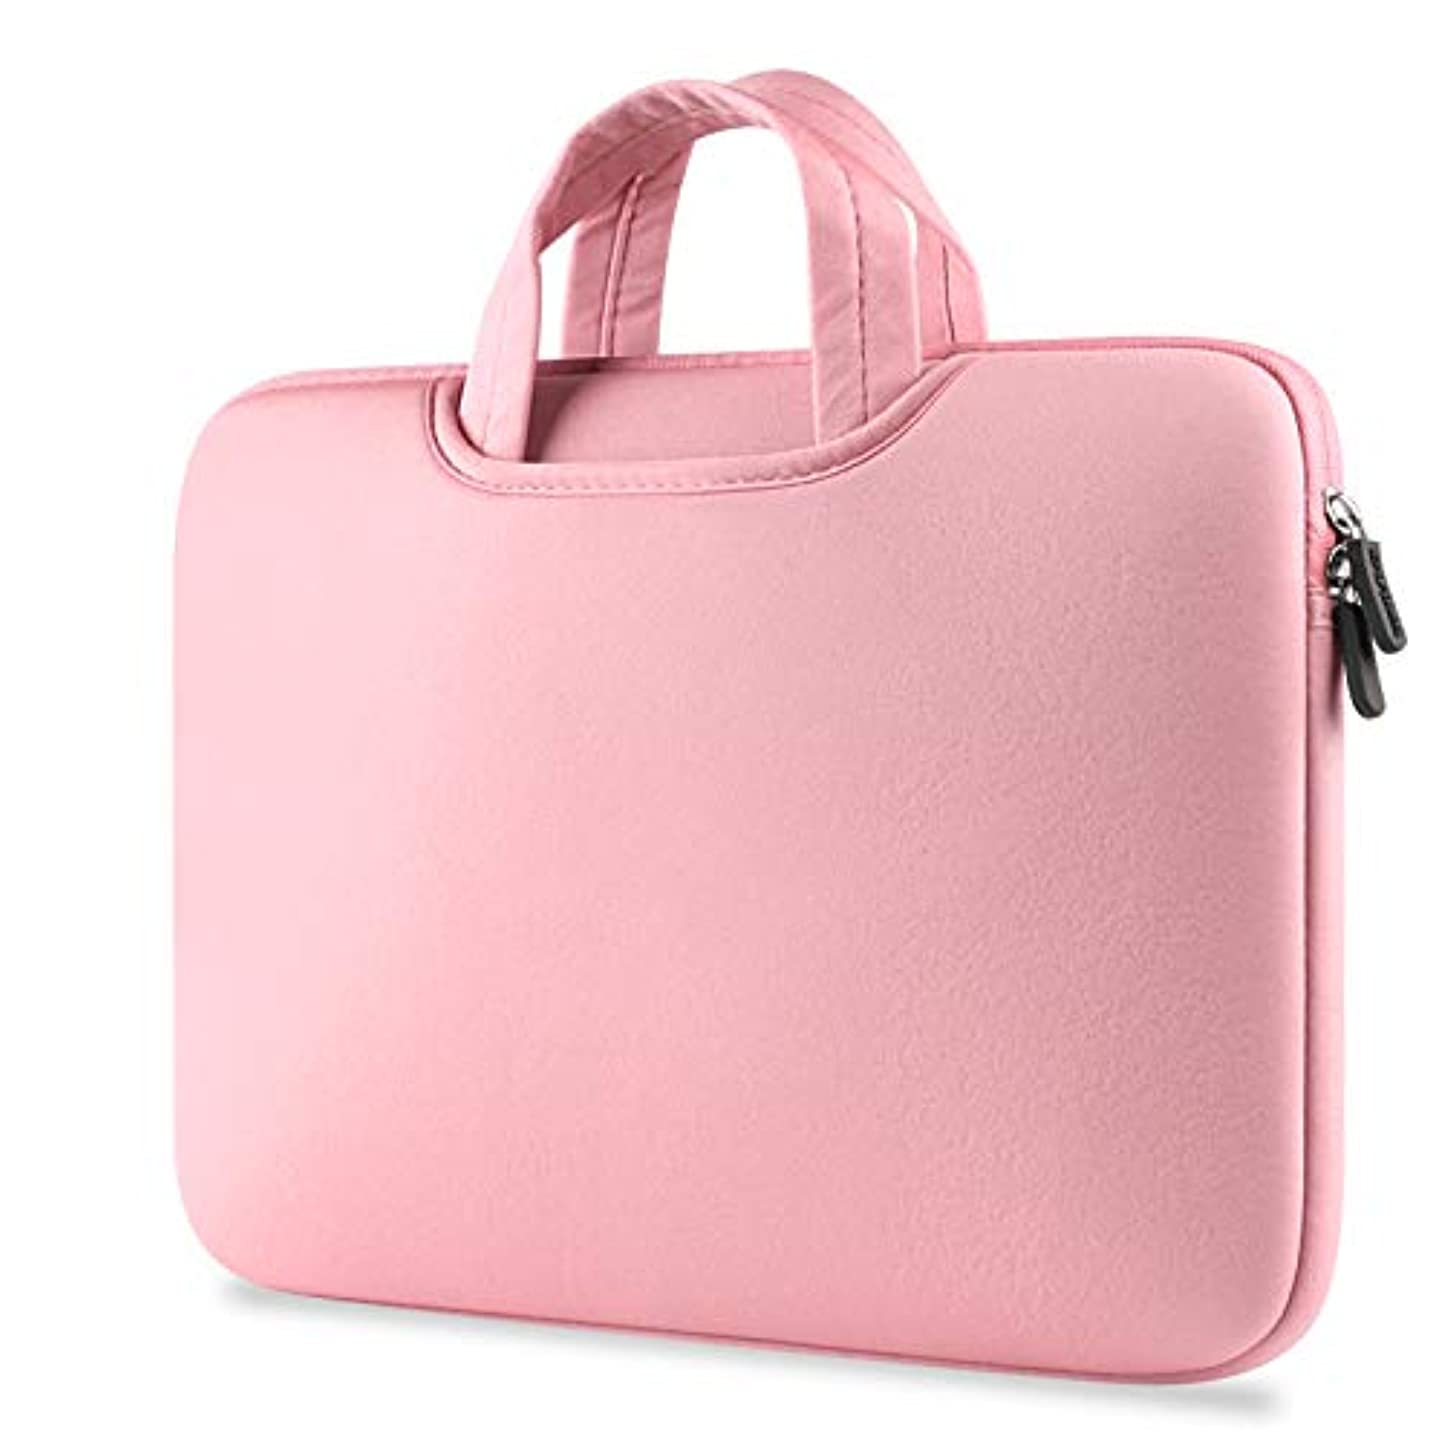 Sammid Sleeve Case for MacBook Pro 15 inch, 15.6 inch Protective Notebook Carrying Bag Case with Pocket and Handle for Most 15.6 Inch Laptop, Notebook, MacBook etc - Pink